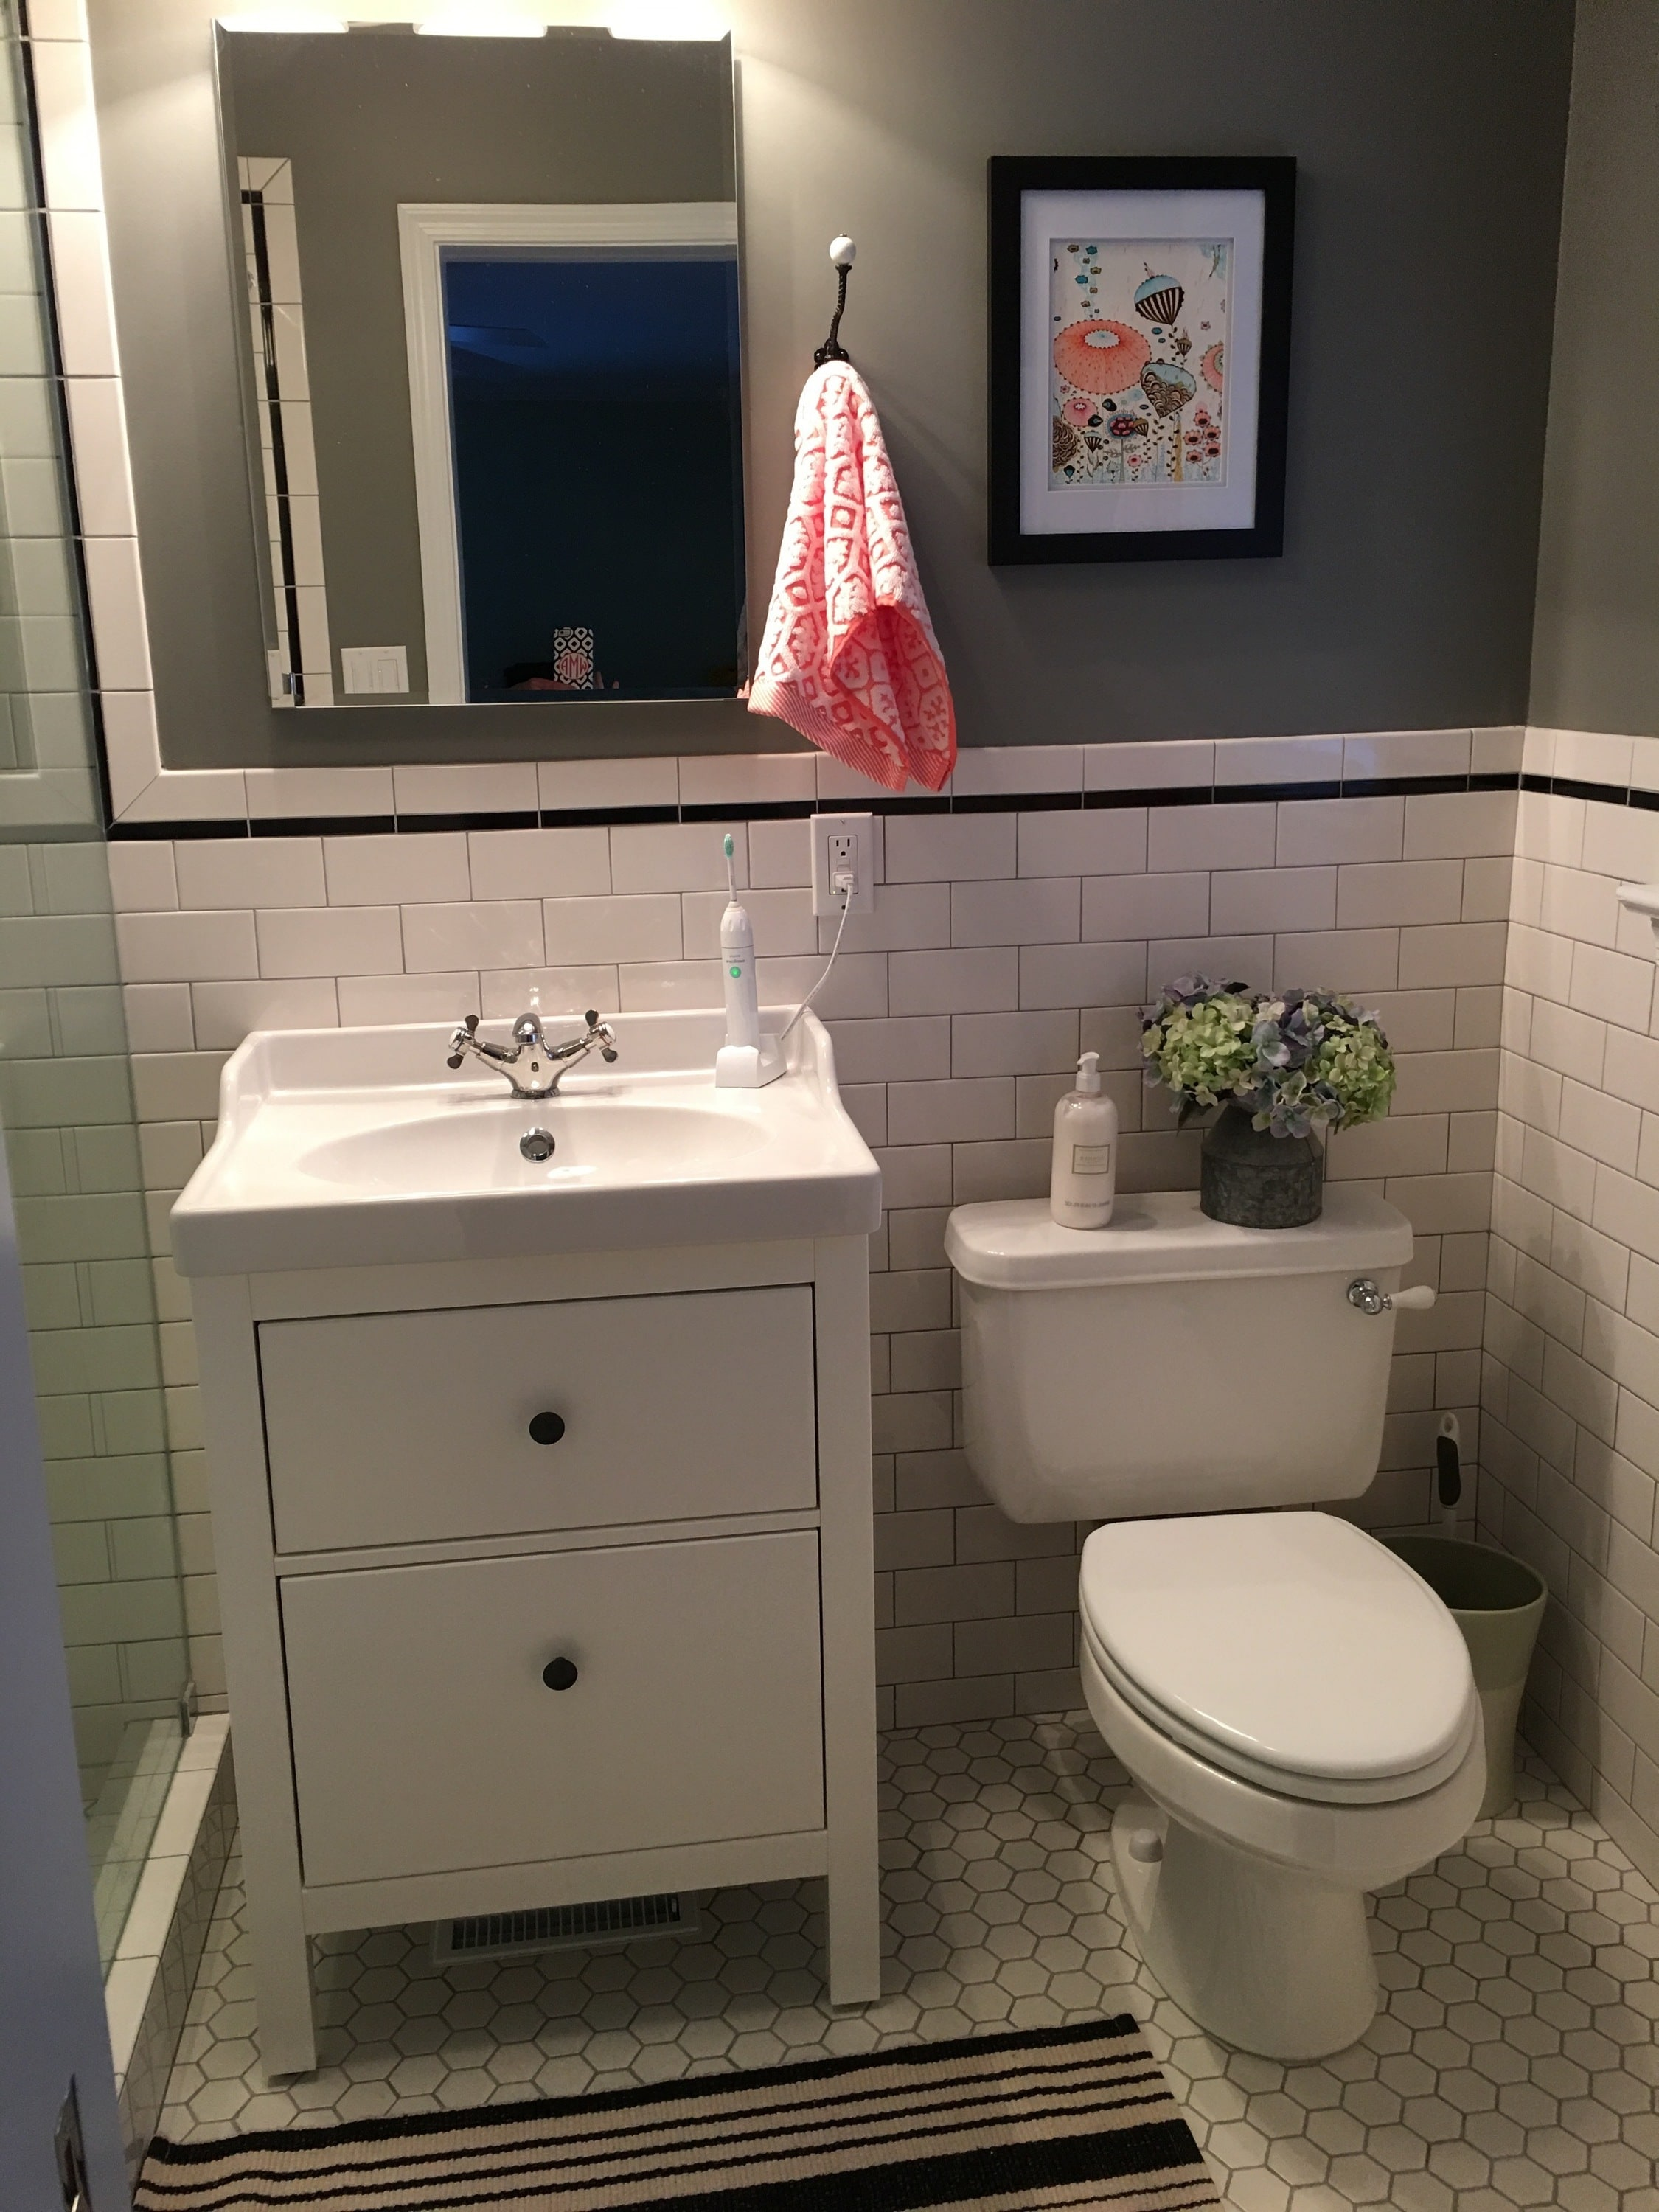 Small bathroom with ikea sink and hemnes cabinet for Small bathroom ideas ikea